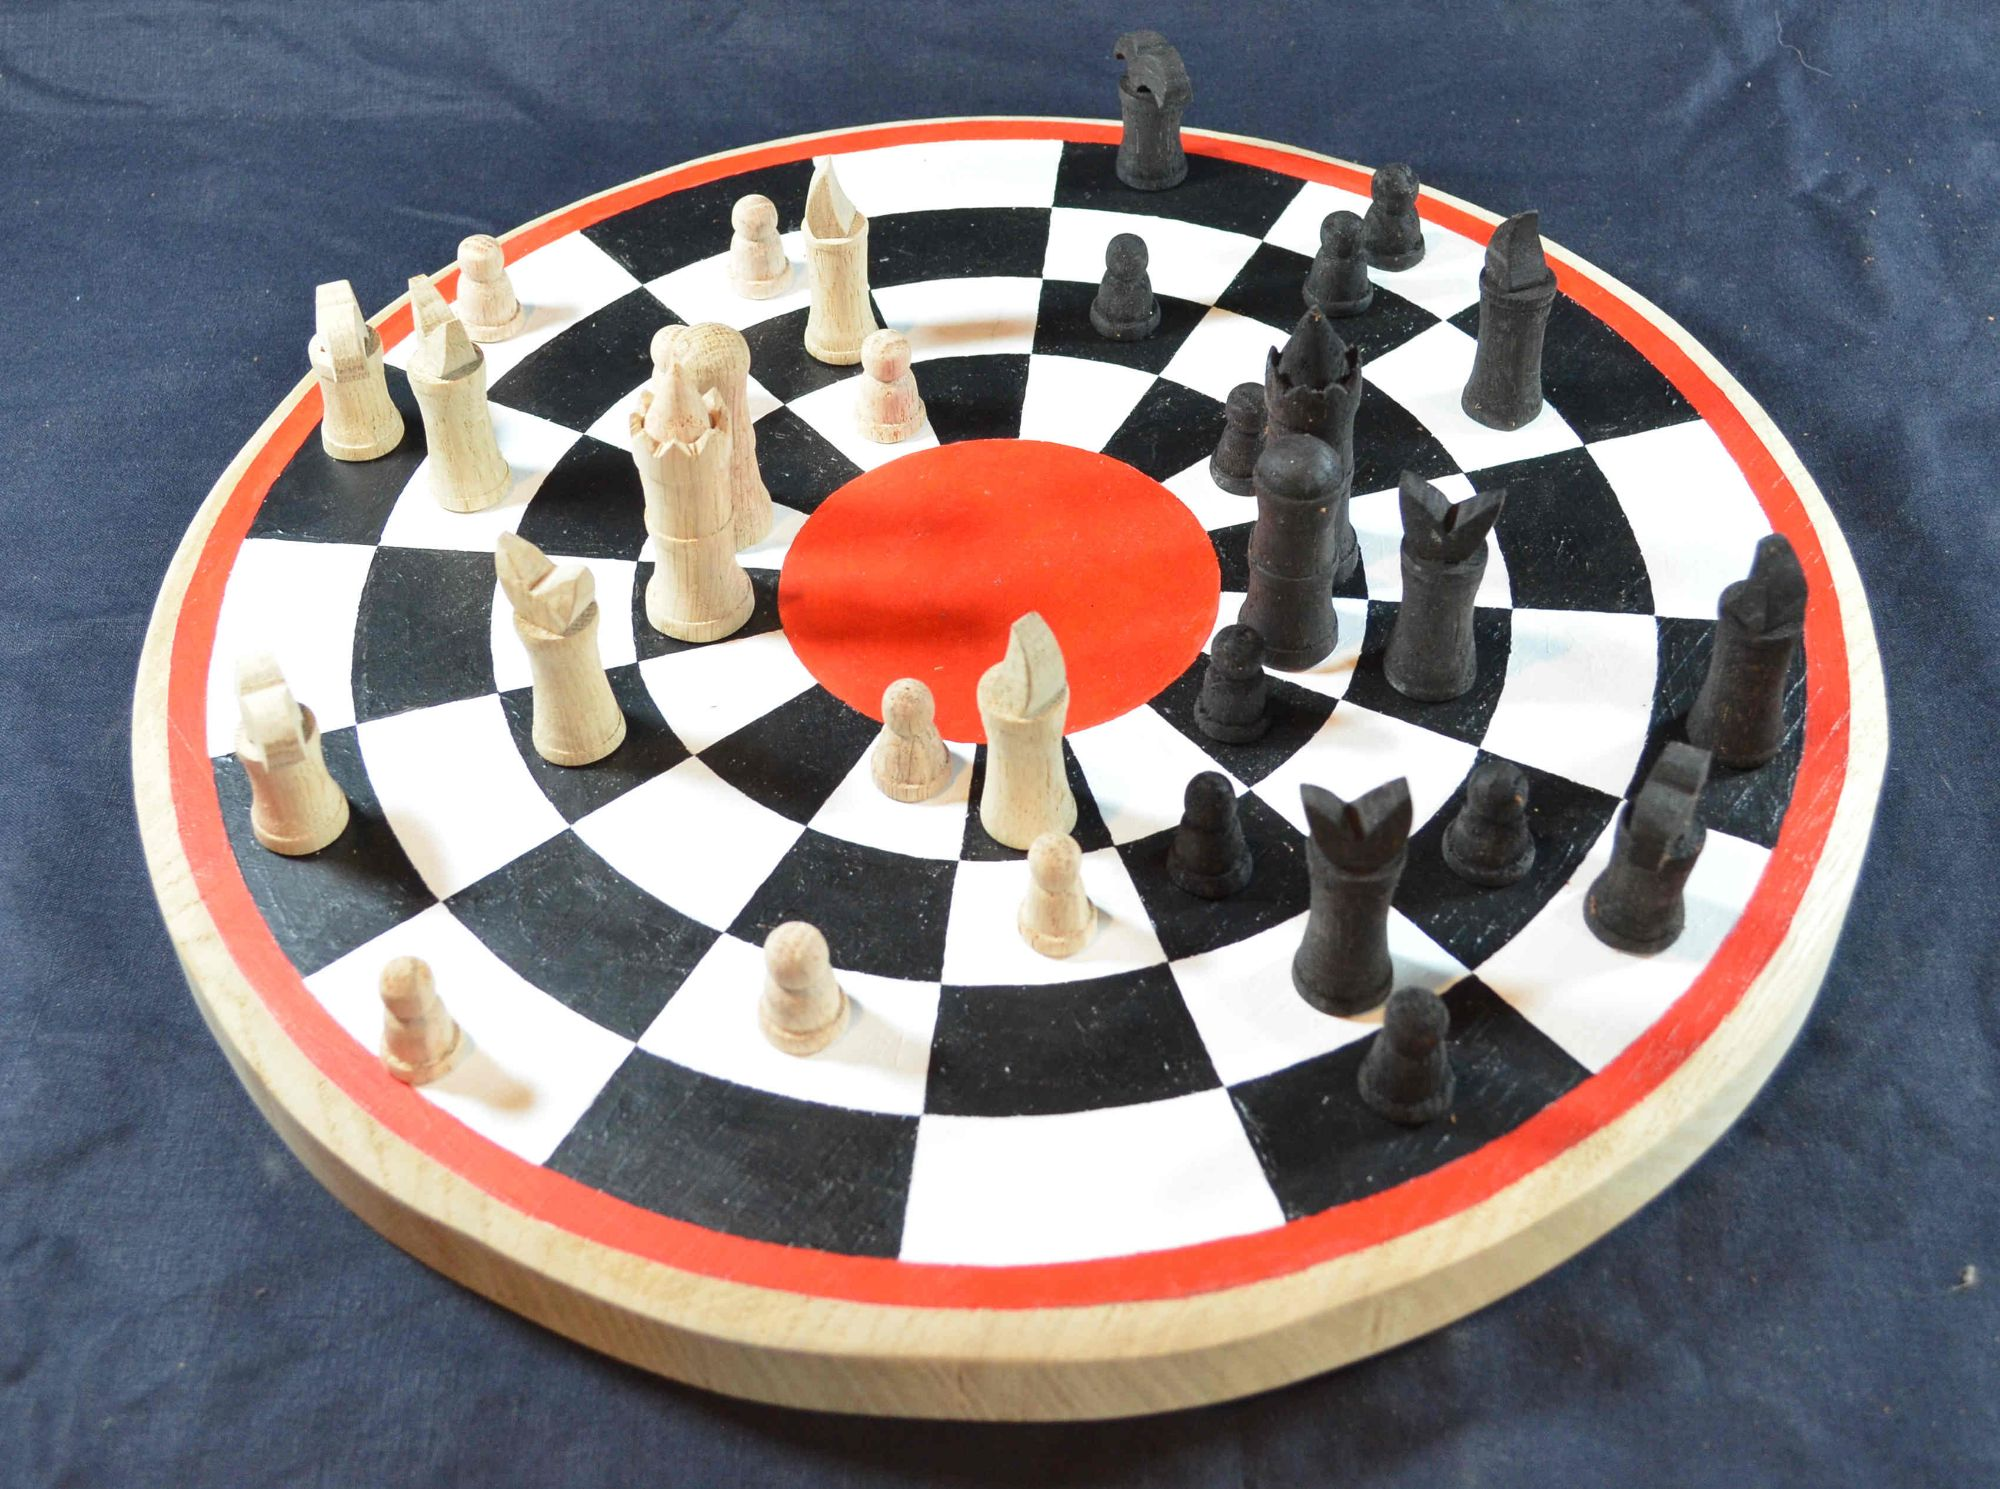 Circular chess board with Publicius chess pieces